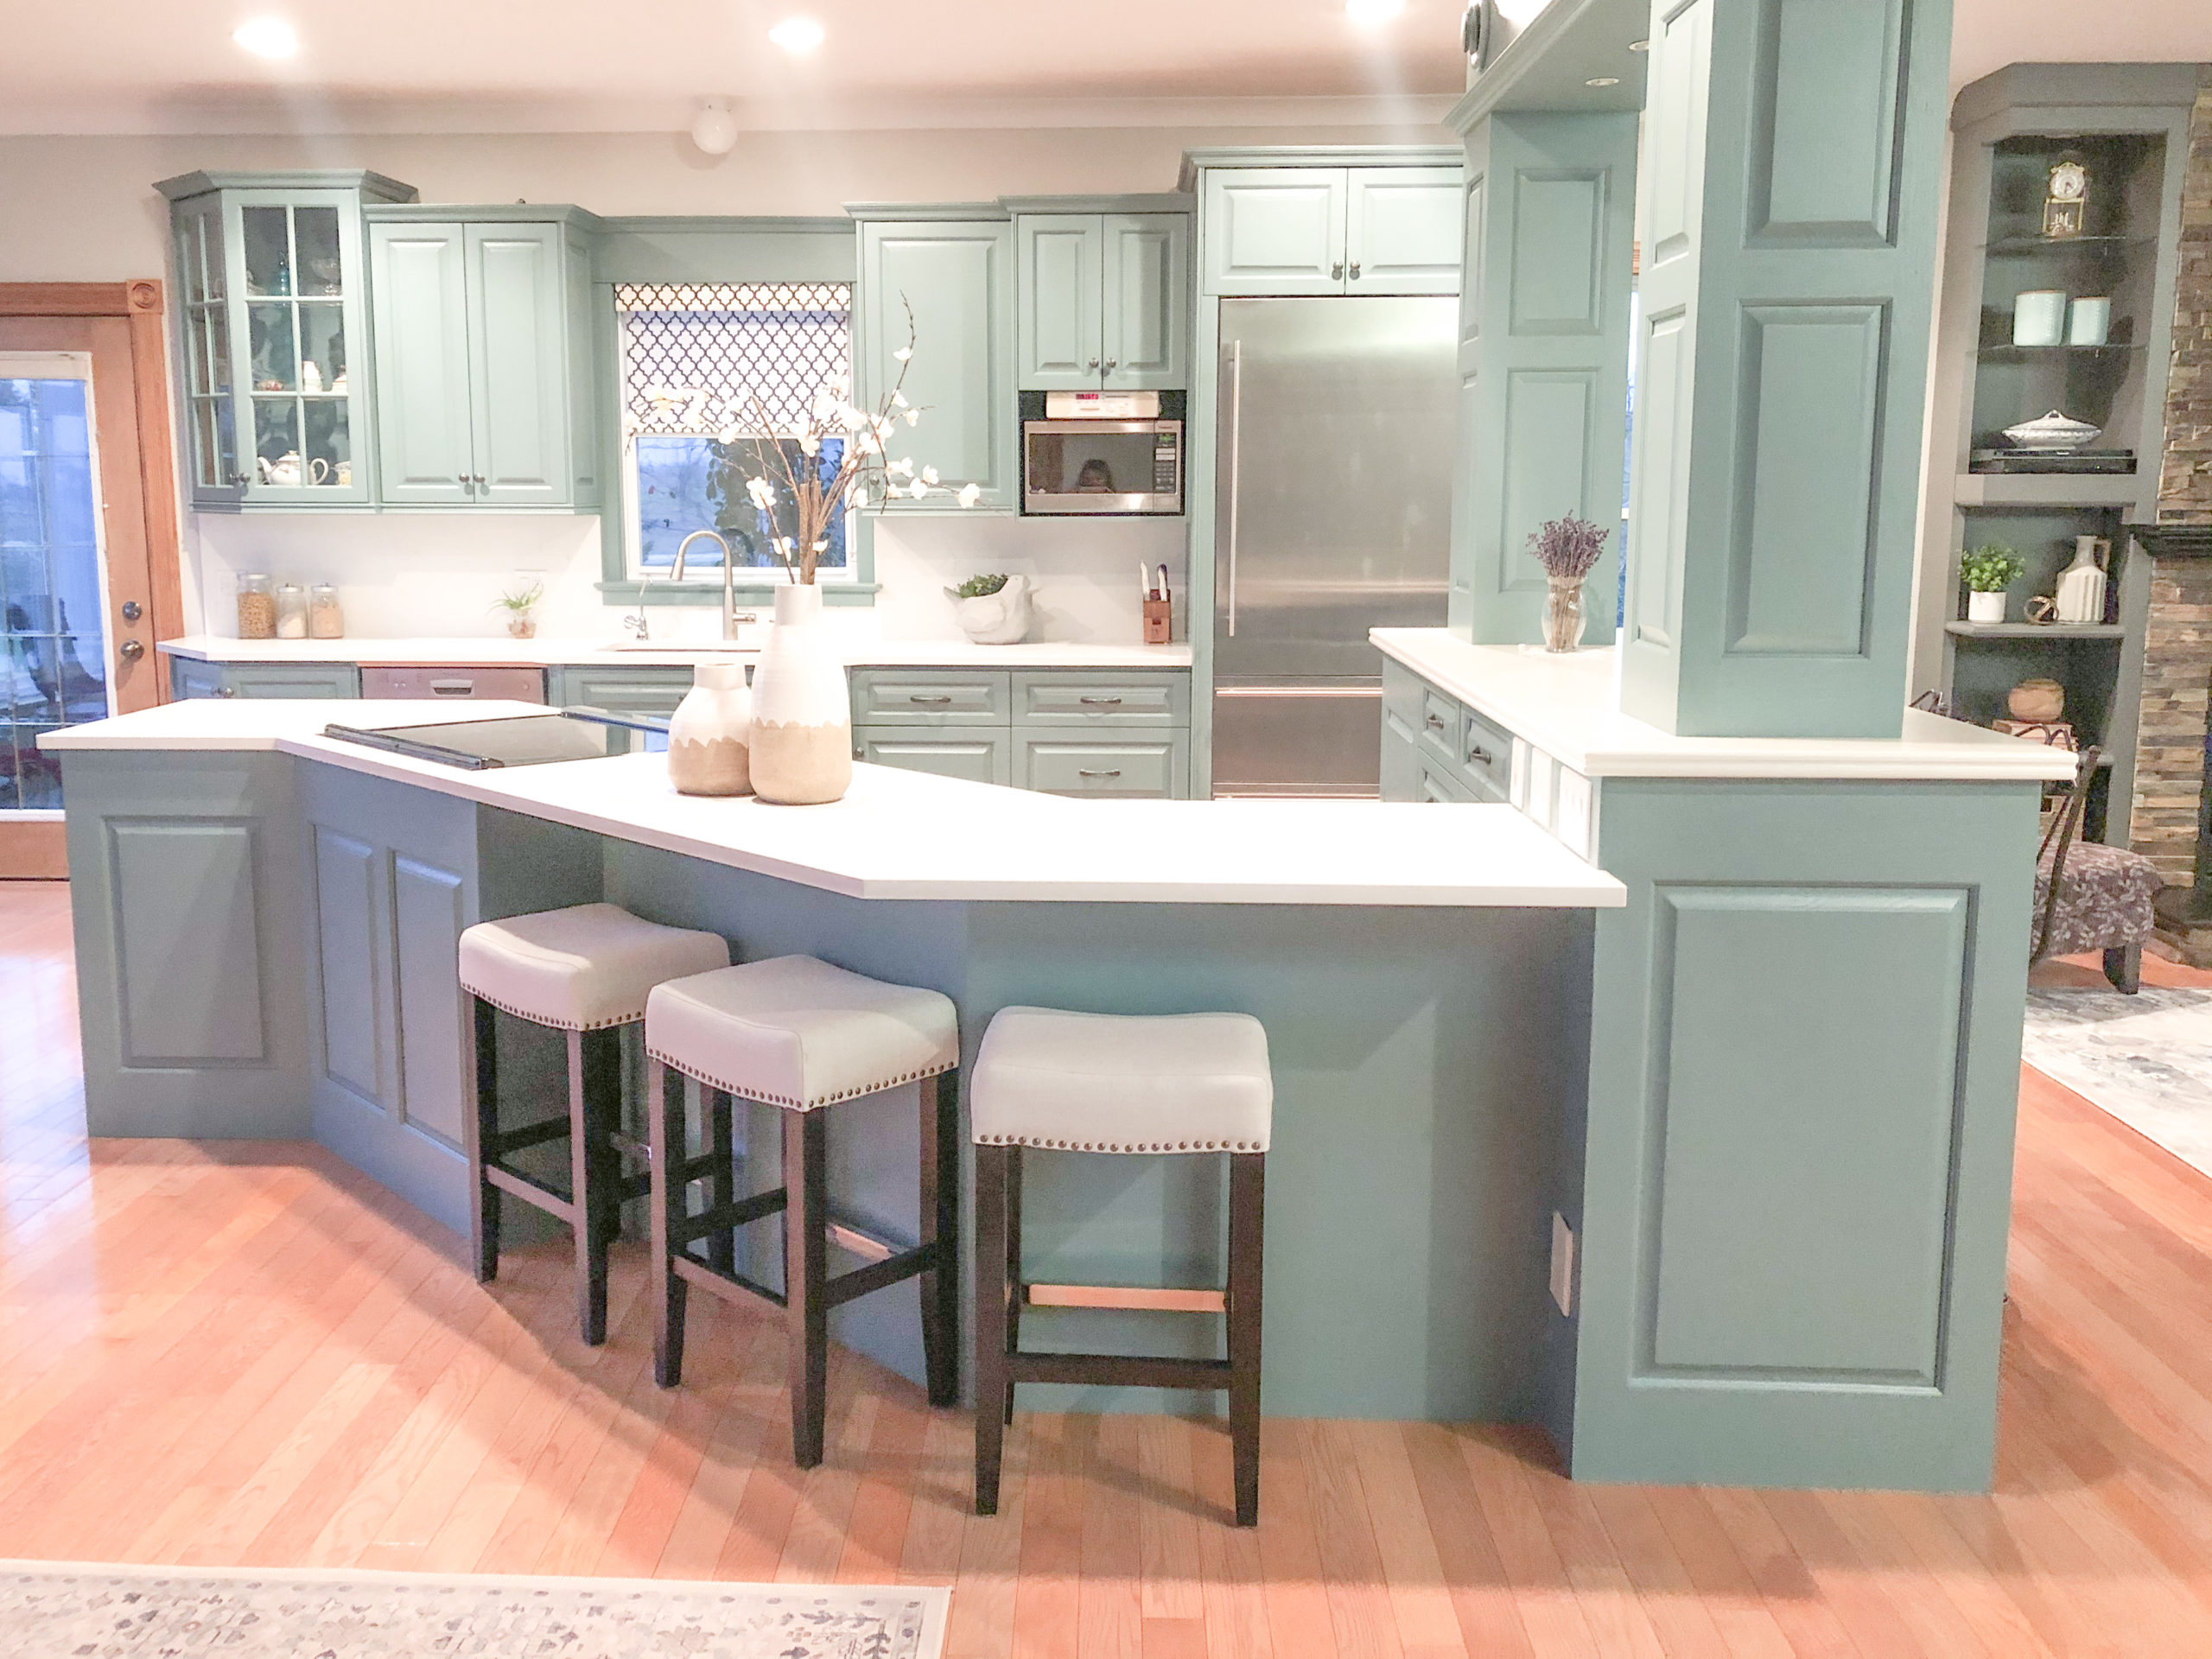 overview of whole kitchen featuring built in and painted cupboards